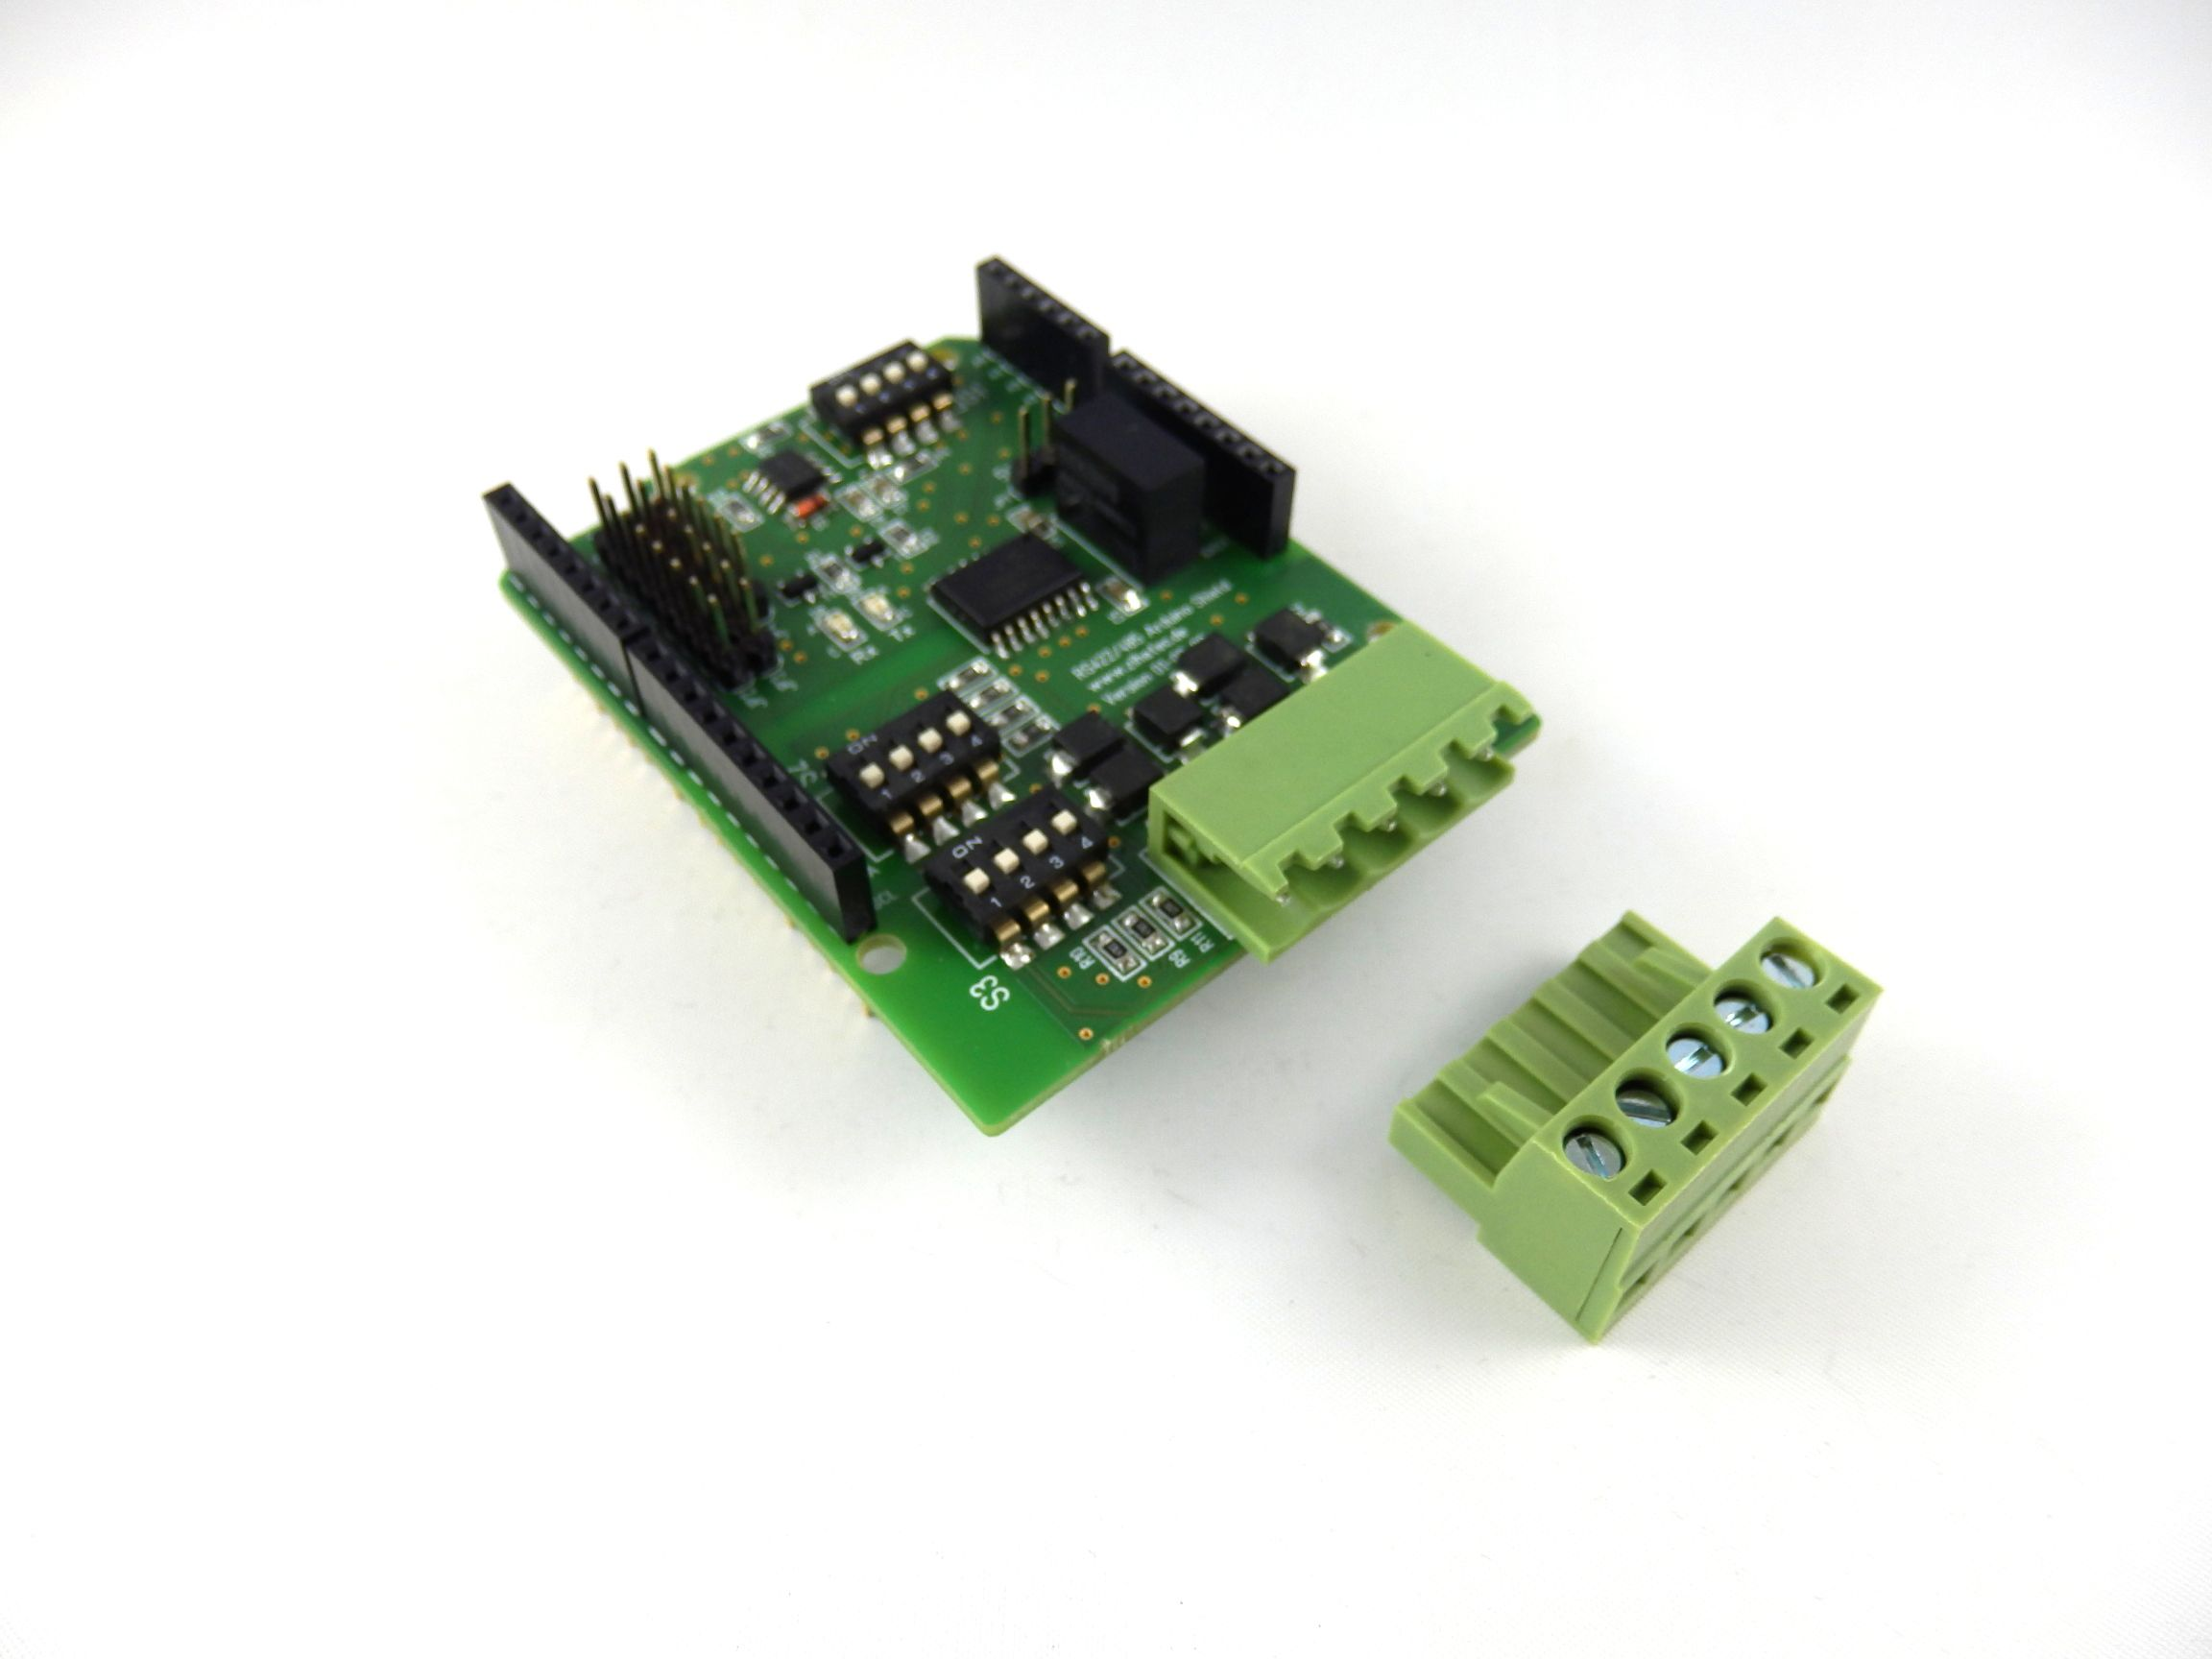 Rugged RS422 & RS485 Shield for Arduino Uno with isolated